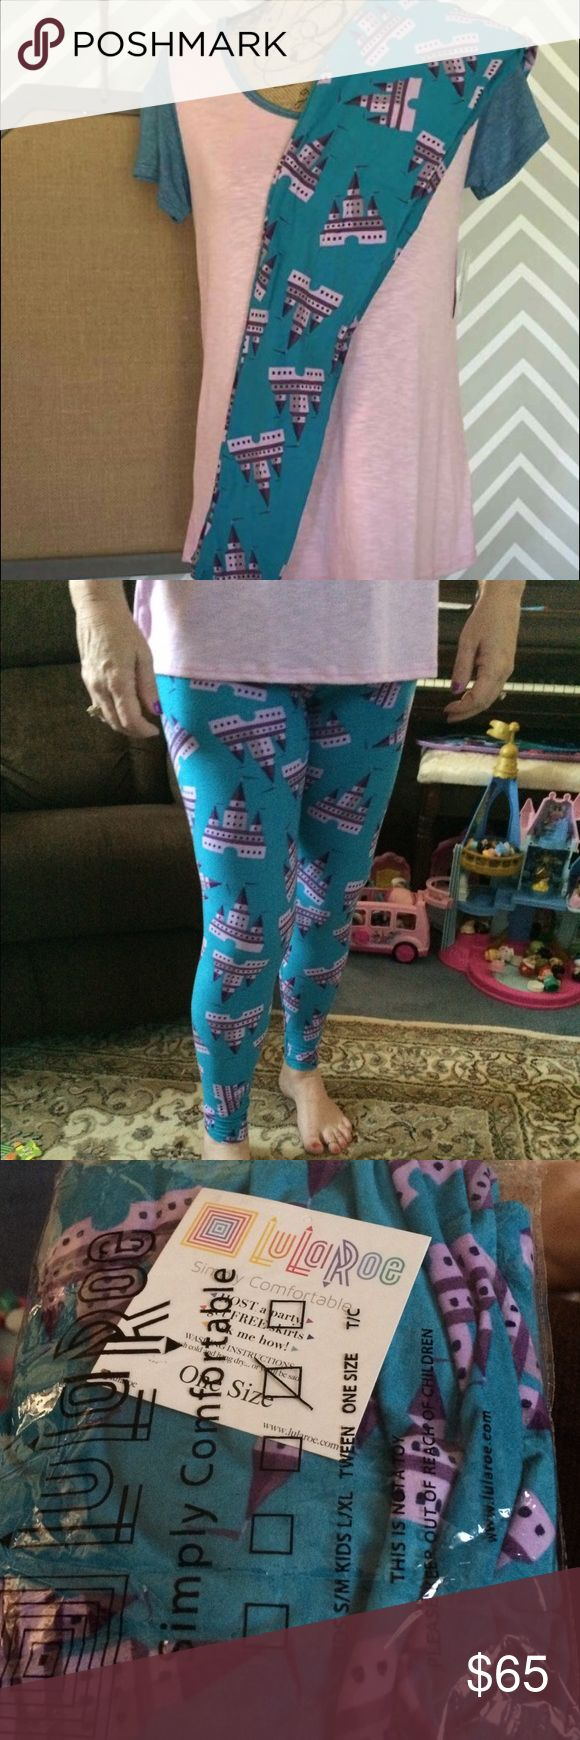 BNWT Lularoe castle leggings Brand new with tag Lularoe Disney castle leggings. Teal with light and dark purple castles. A must for all Disney lovers!! LuLaRoe Pants Leggings